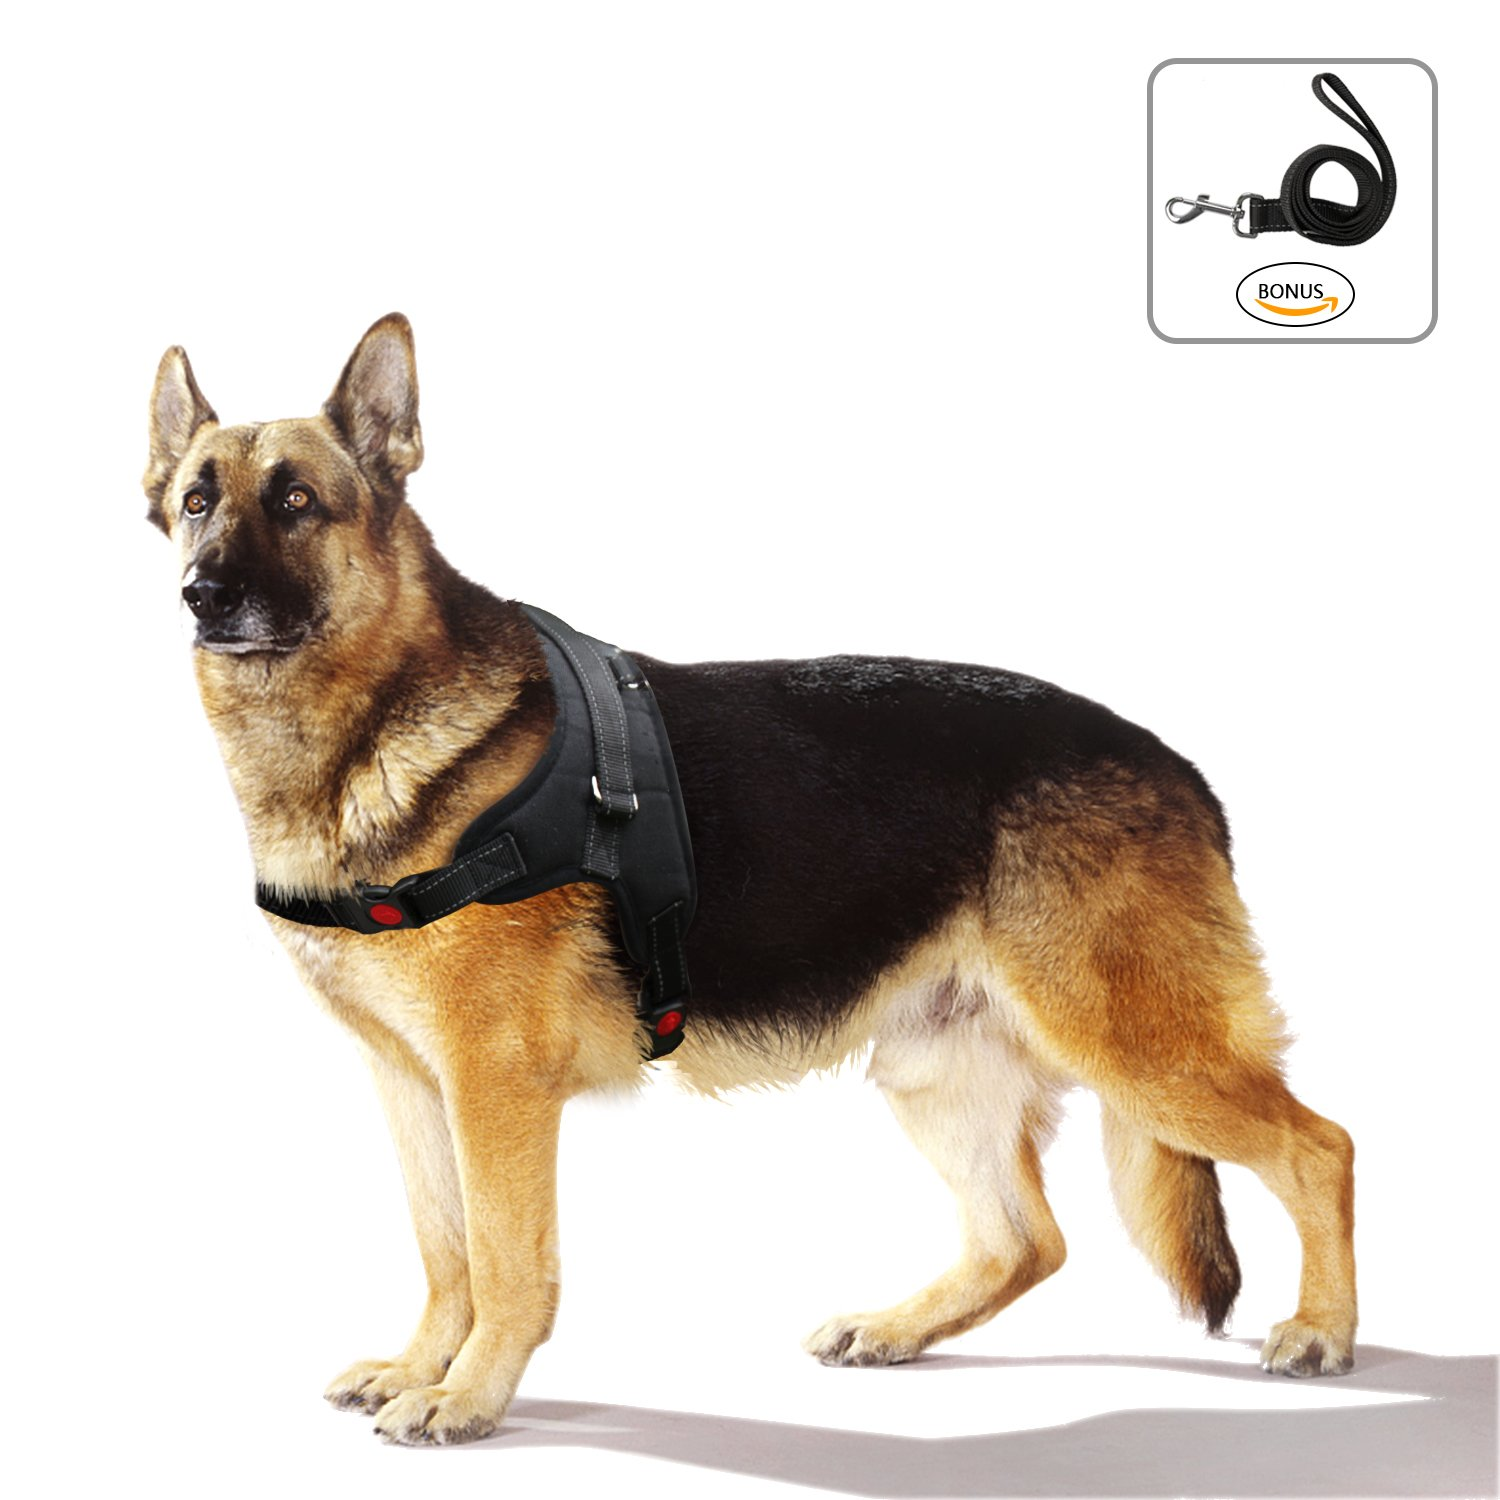 Dog Harness No-Pull Pet Harness - Adjustable Padded Reflective Pet Vest with Handle & Dog Leash Set - Easy Control for Small Medium Large Dogs - Perfect for Daily Training Walking Running (Medium)